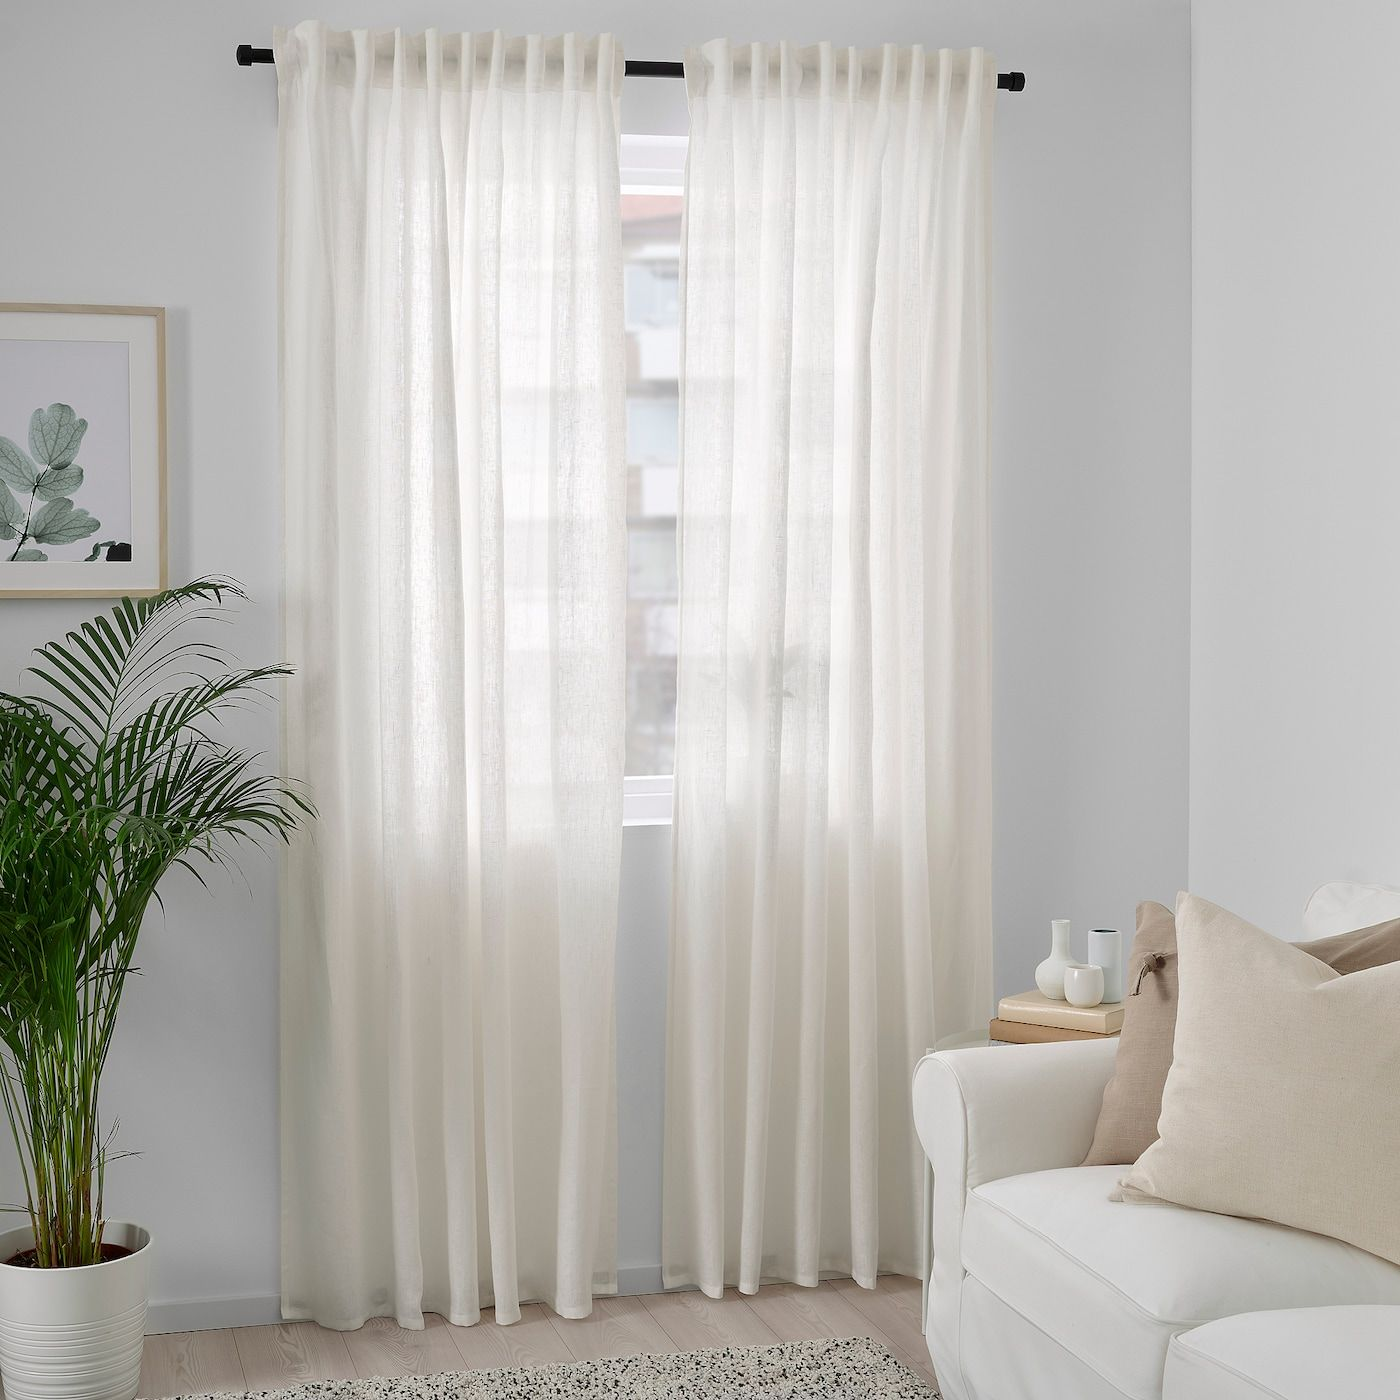 Dytag Curtains 1 Pair White Ikea In 2020 Sheers Curtains Living Room White Sheer Curtains Living Room White Curtains Living Room #off #white #living #room #curtains